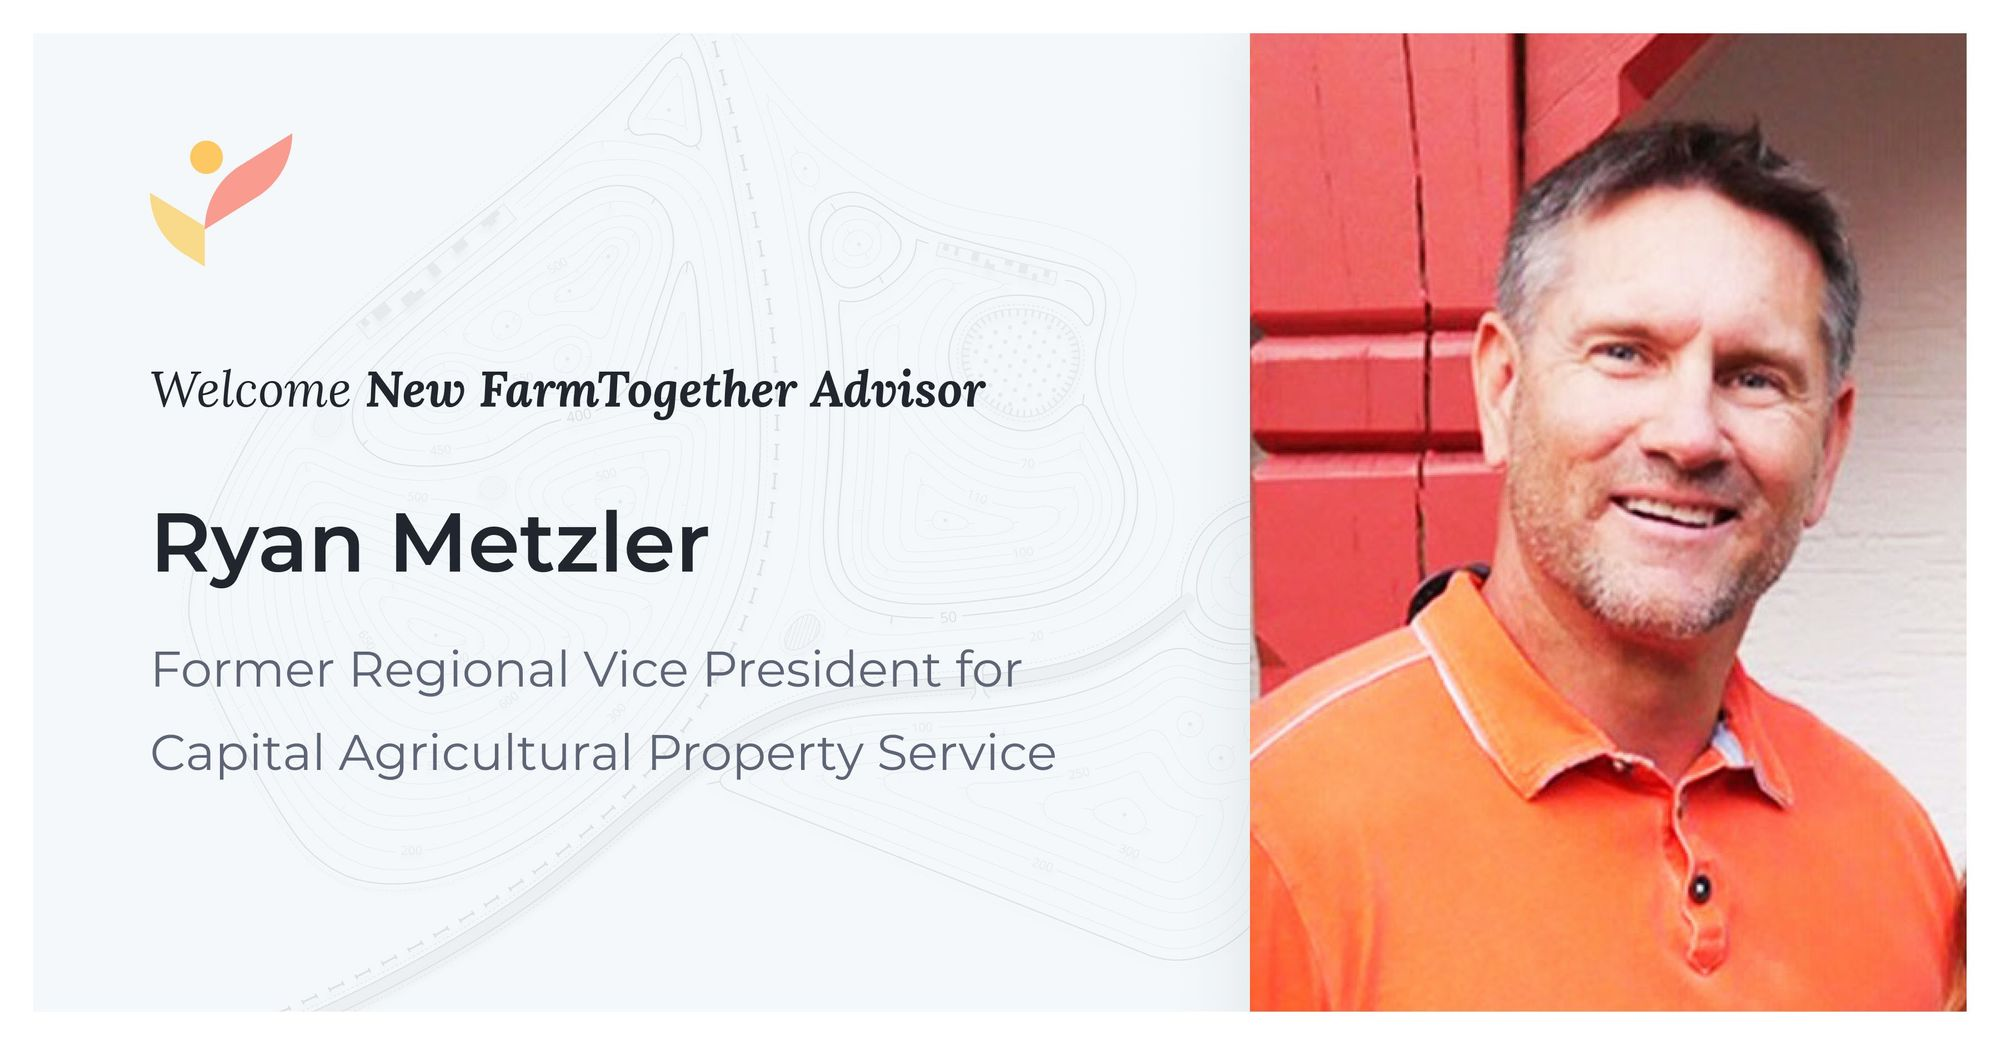 Ryan Metzler, Former Regional Vice President for Capital Agricultural Property Service